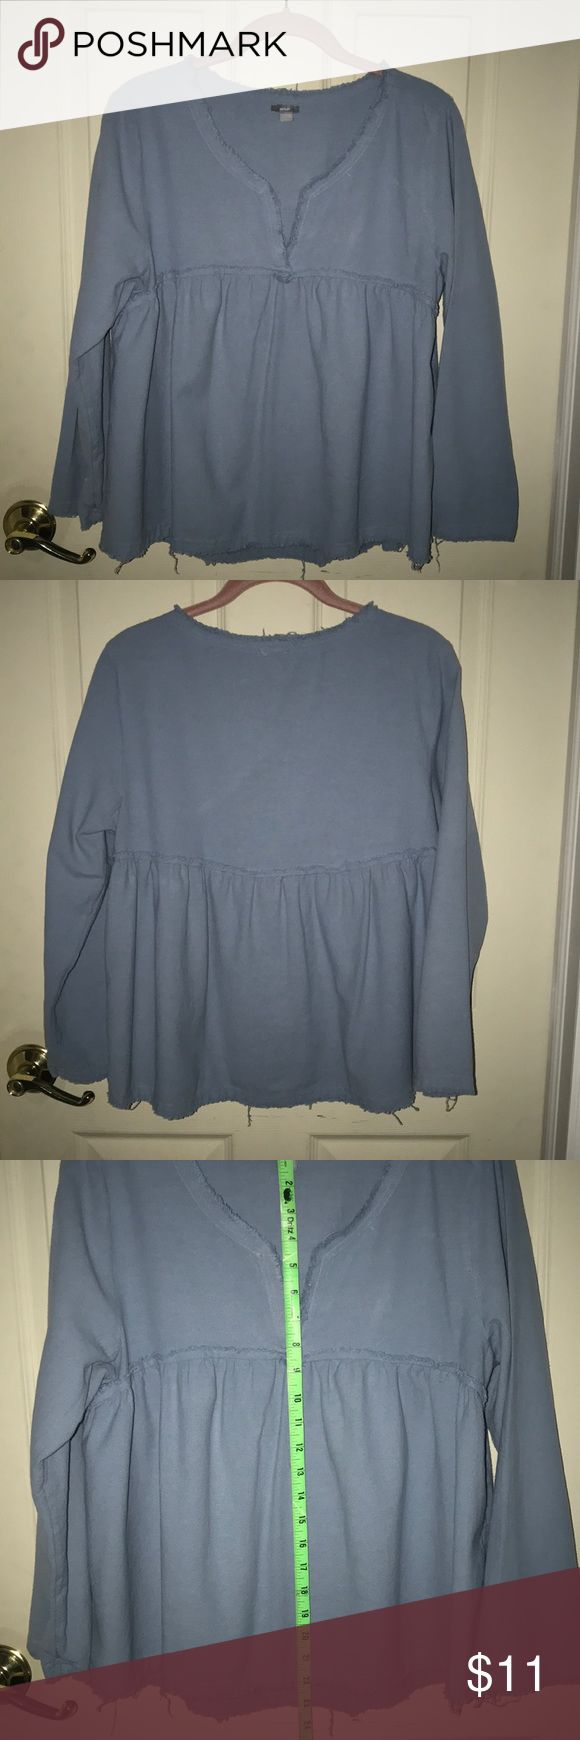 "Ladies Aerie Blue Shirt Aerie size Large Blue Shirt. Front of shirt measures 22"" in length and approx 23 1/2 at the back.  Shirt has been worn a few times and is in good condition. Comes from a smoke free home. aerie Tops Blouses"